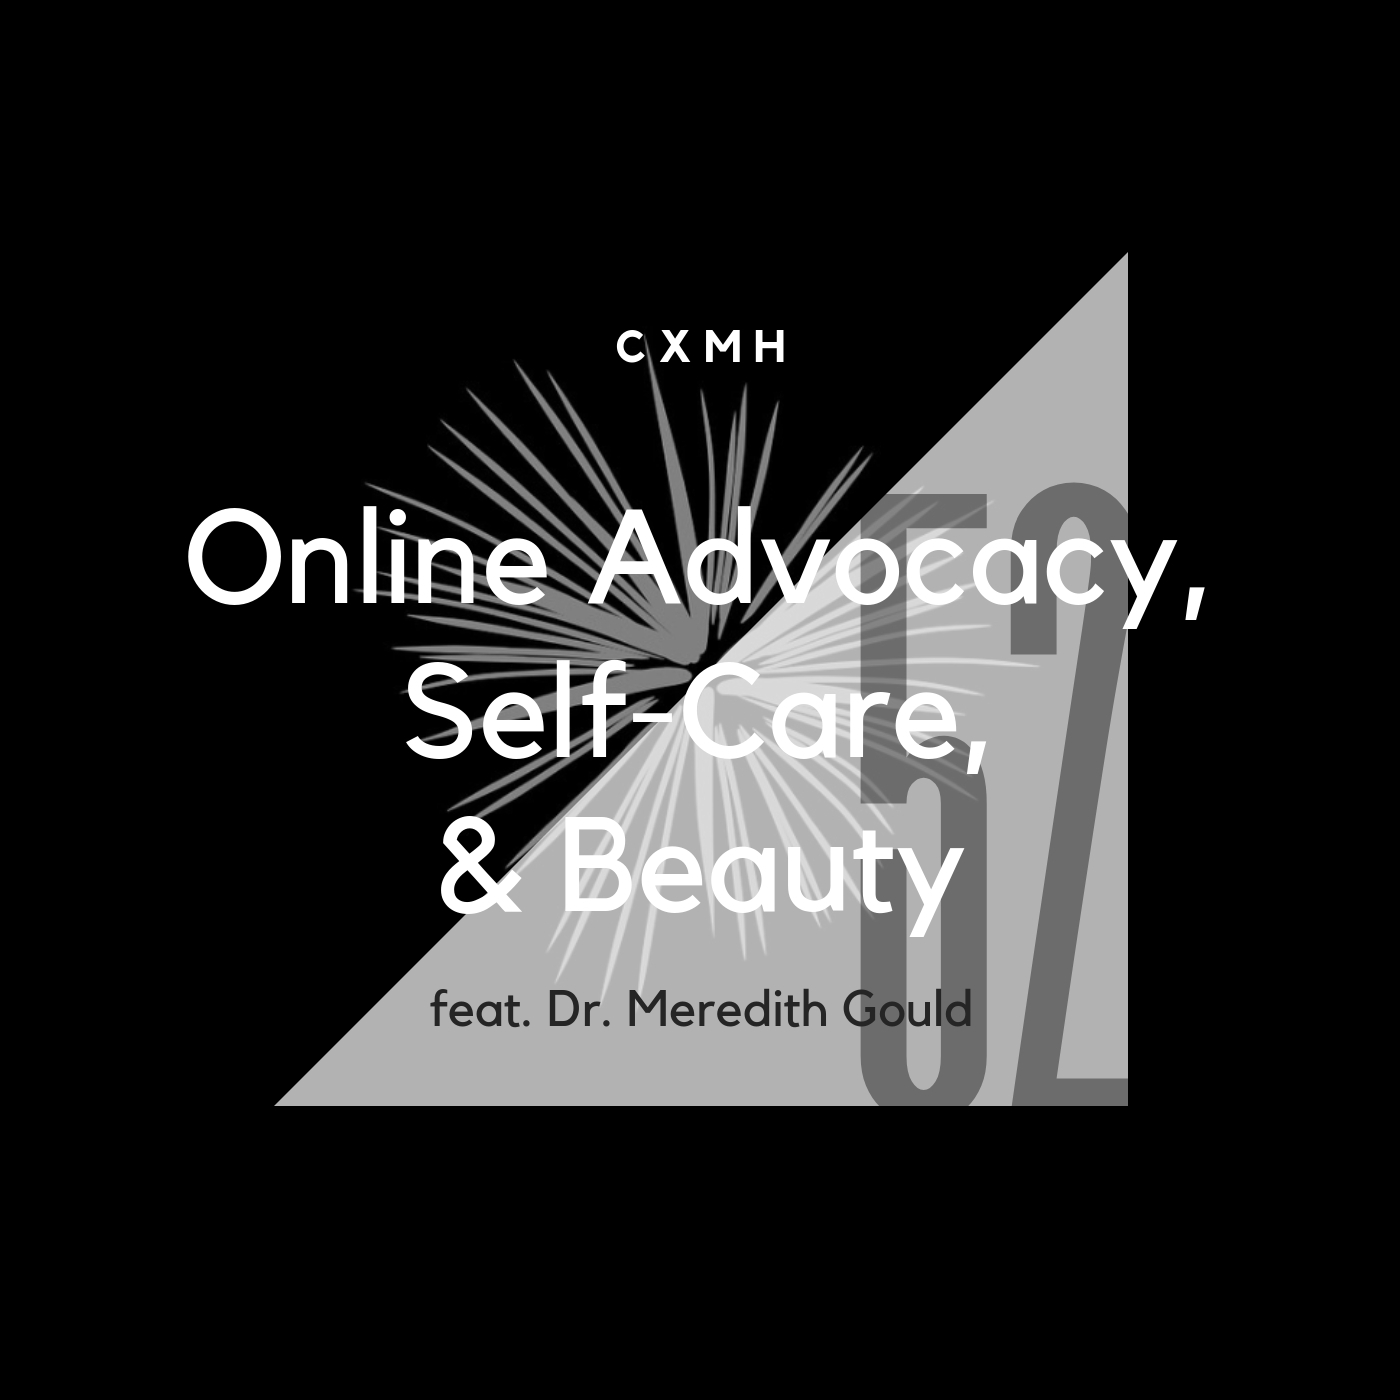 CXMH - Main Episodes (45).jpg